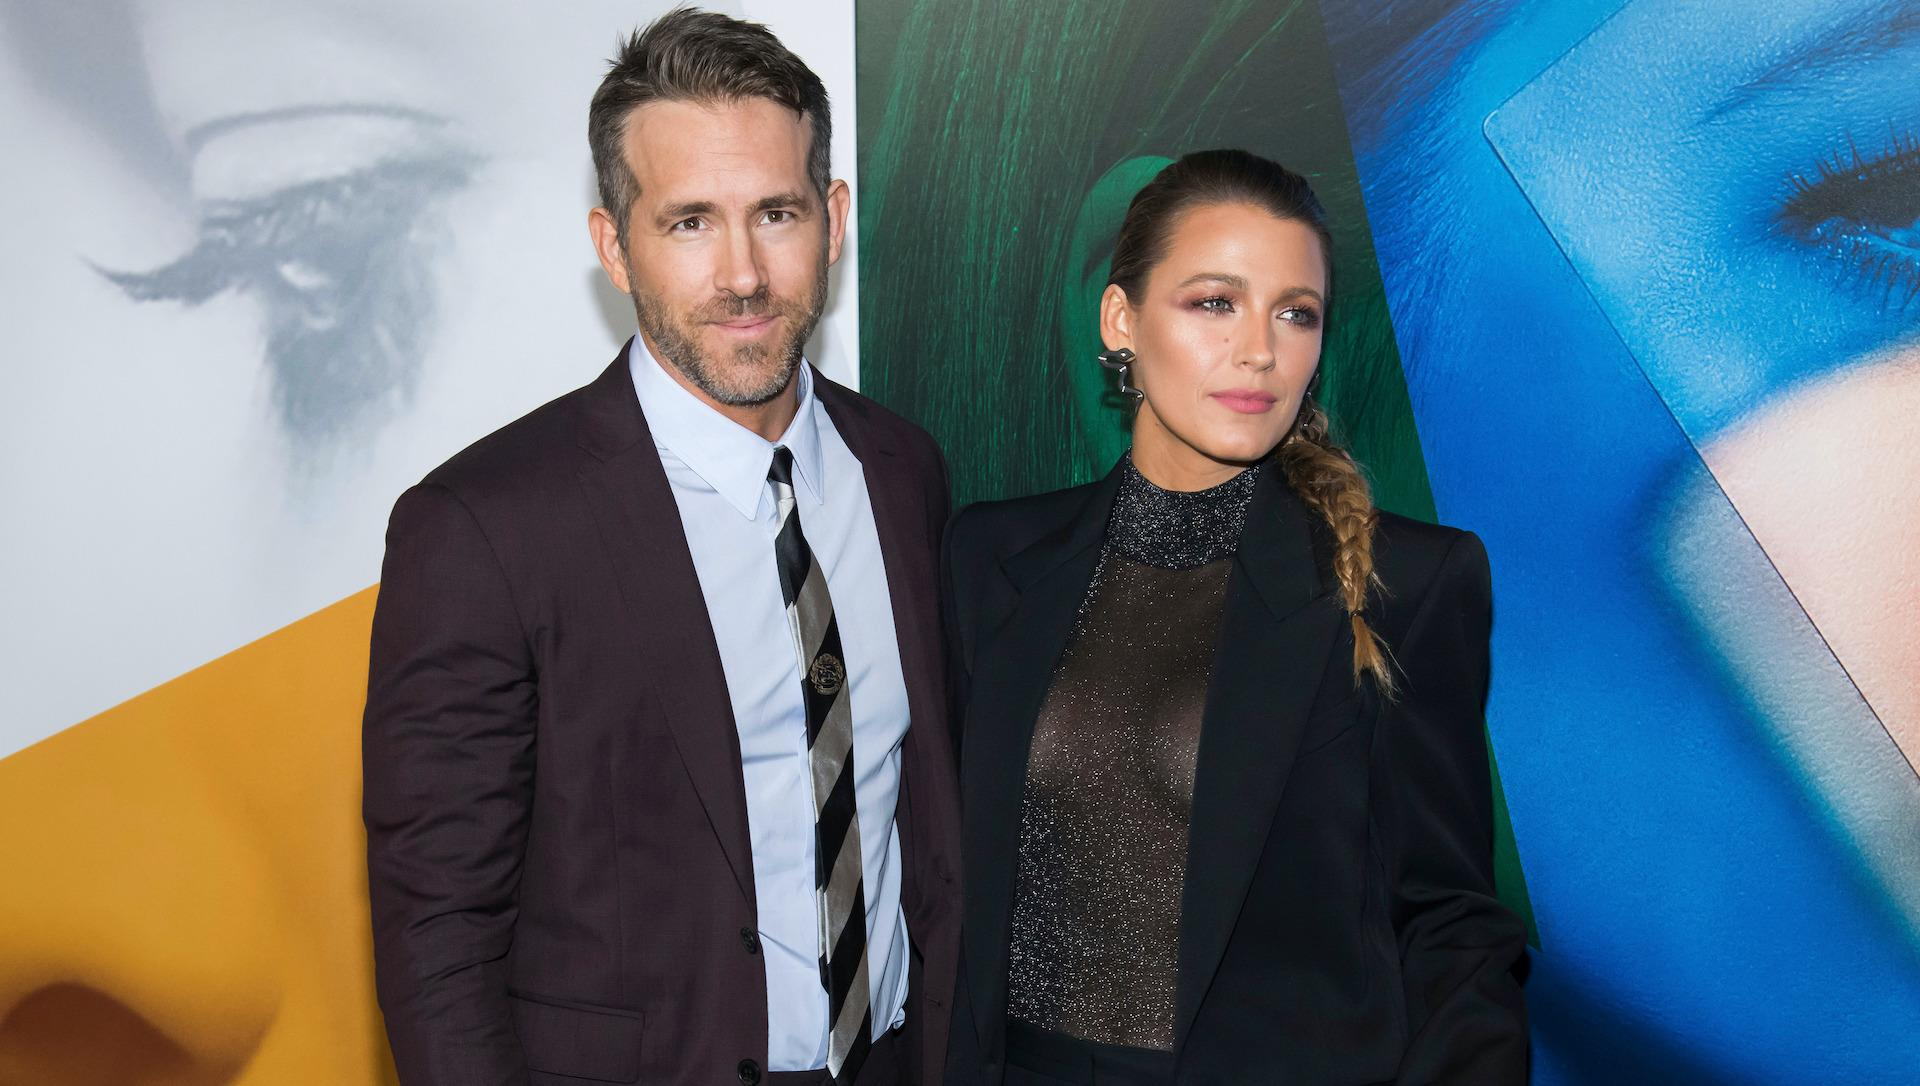 Blake Lively Ryan Reynolds Are Ashamed Of Their Past Racism Are Teaching Their Kids To Do Better